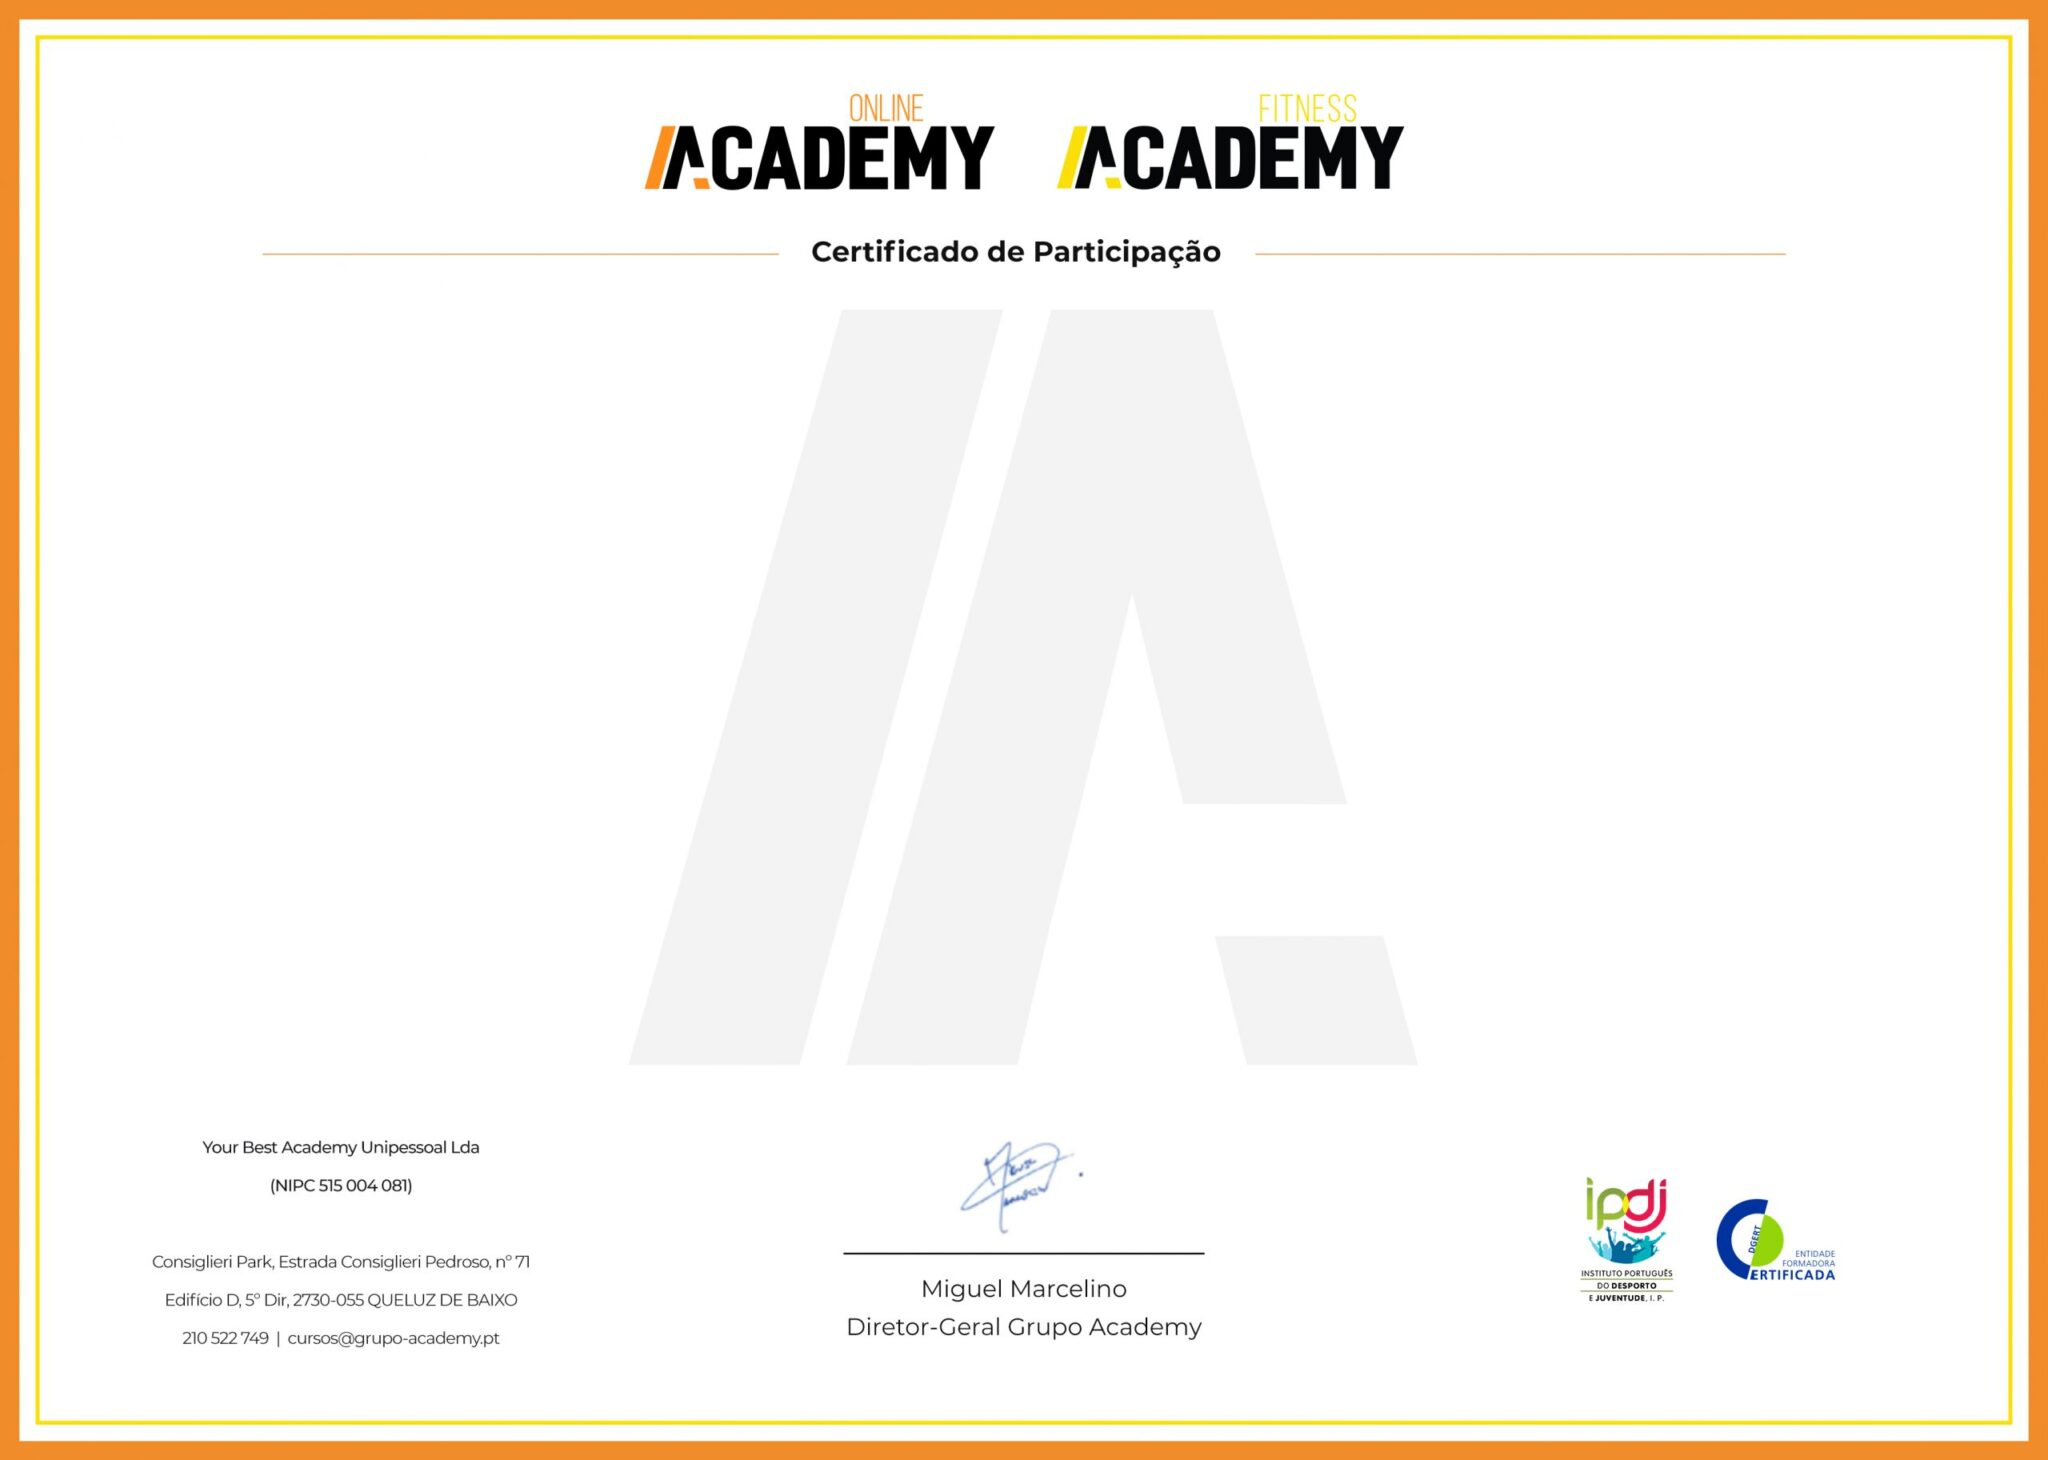 Visual Certificado Online Academy Fitness Academy 2 1 scaled